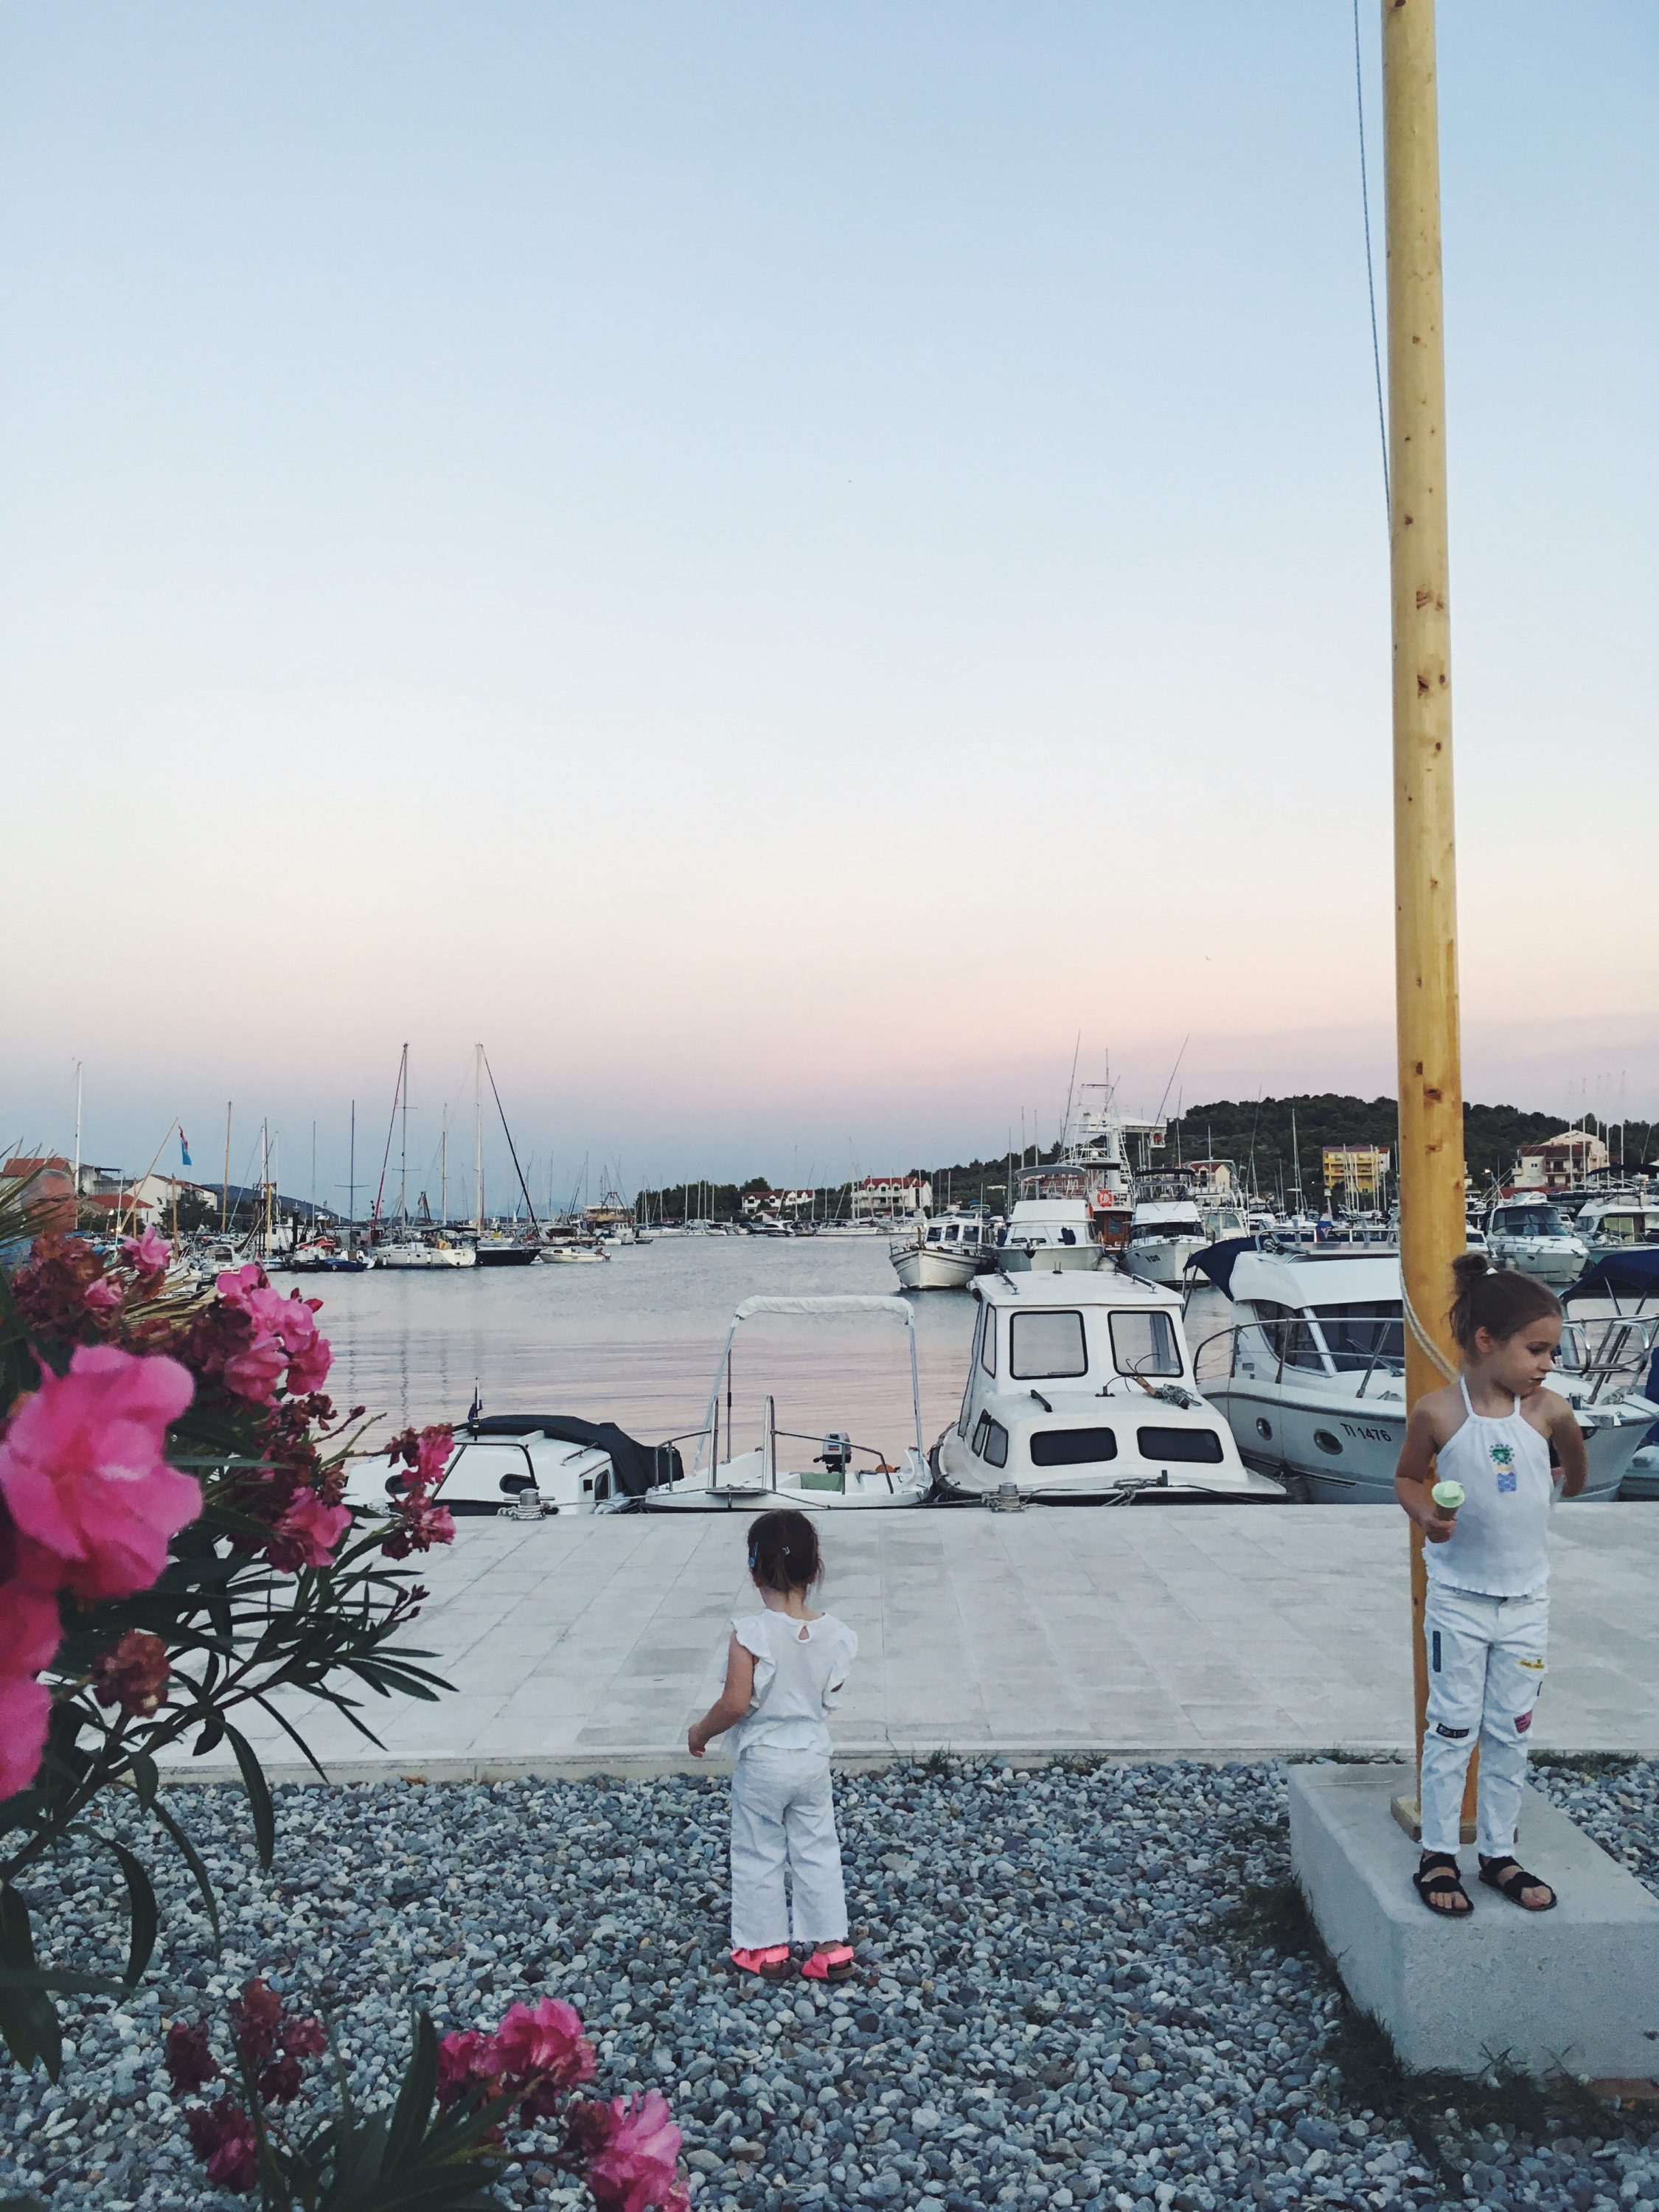 Murter Island Croatia full of life free spirit nature mom blogger jezera tisno happiness mama blogerica traveling kids lifestyle sea adriatic jadransko more more less ines blogger travel boat summer ads riva venture sunset sisters flowers riva jezera